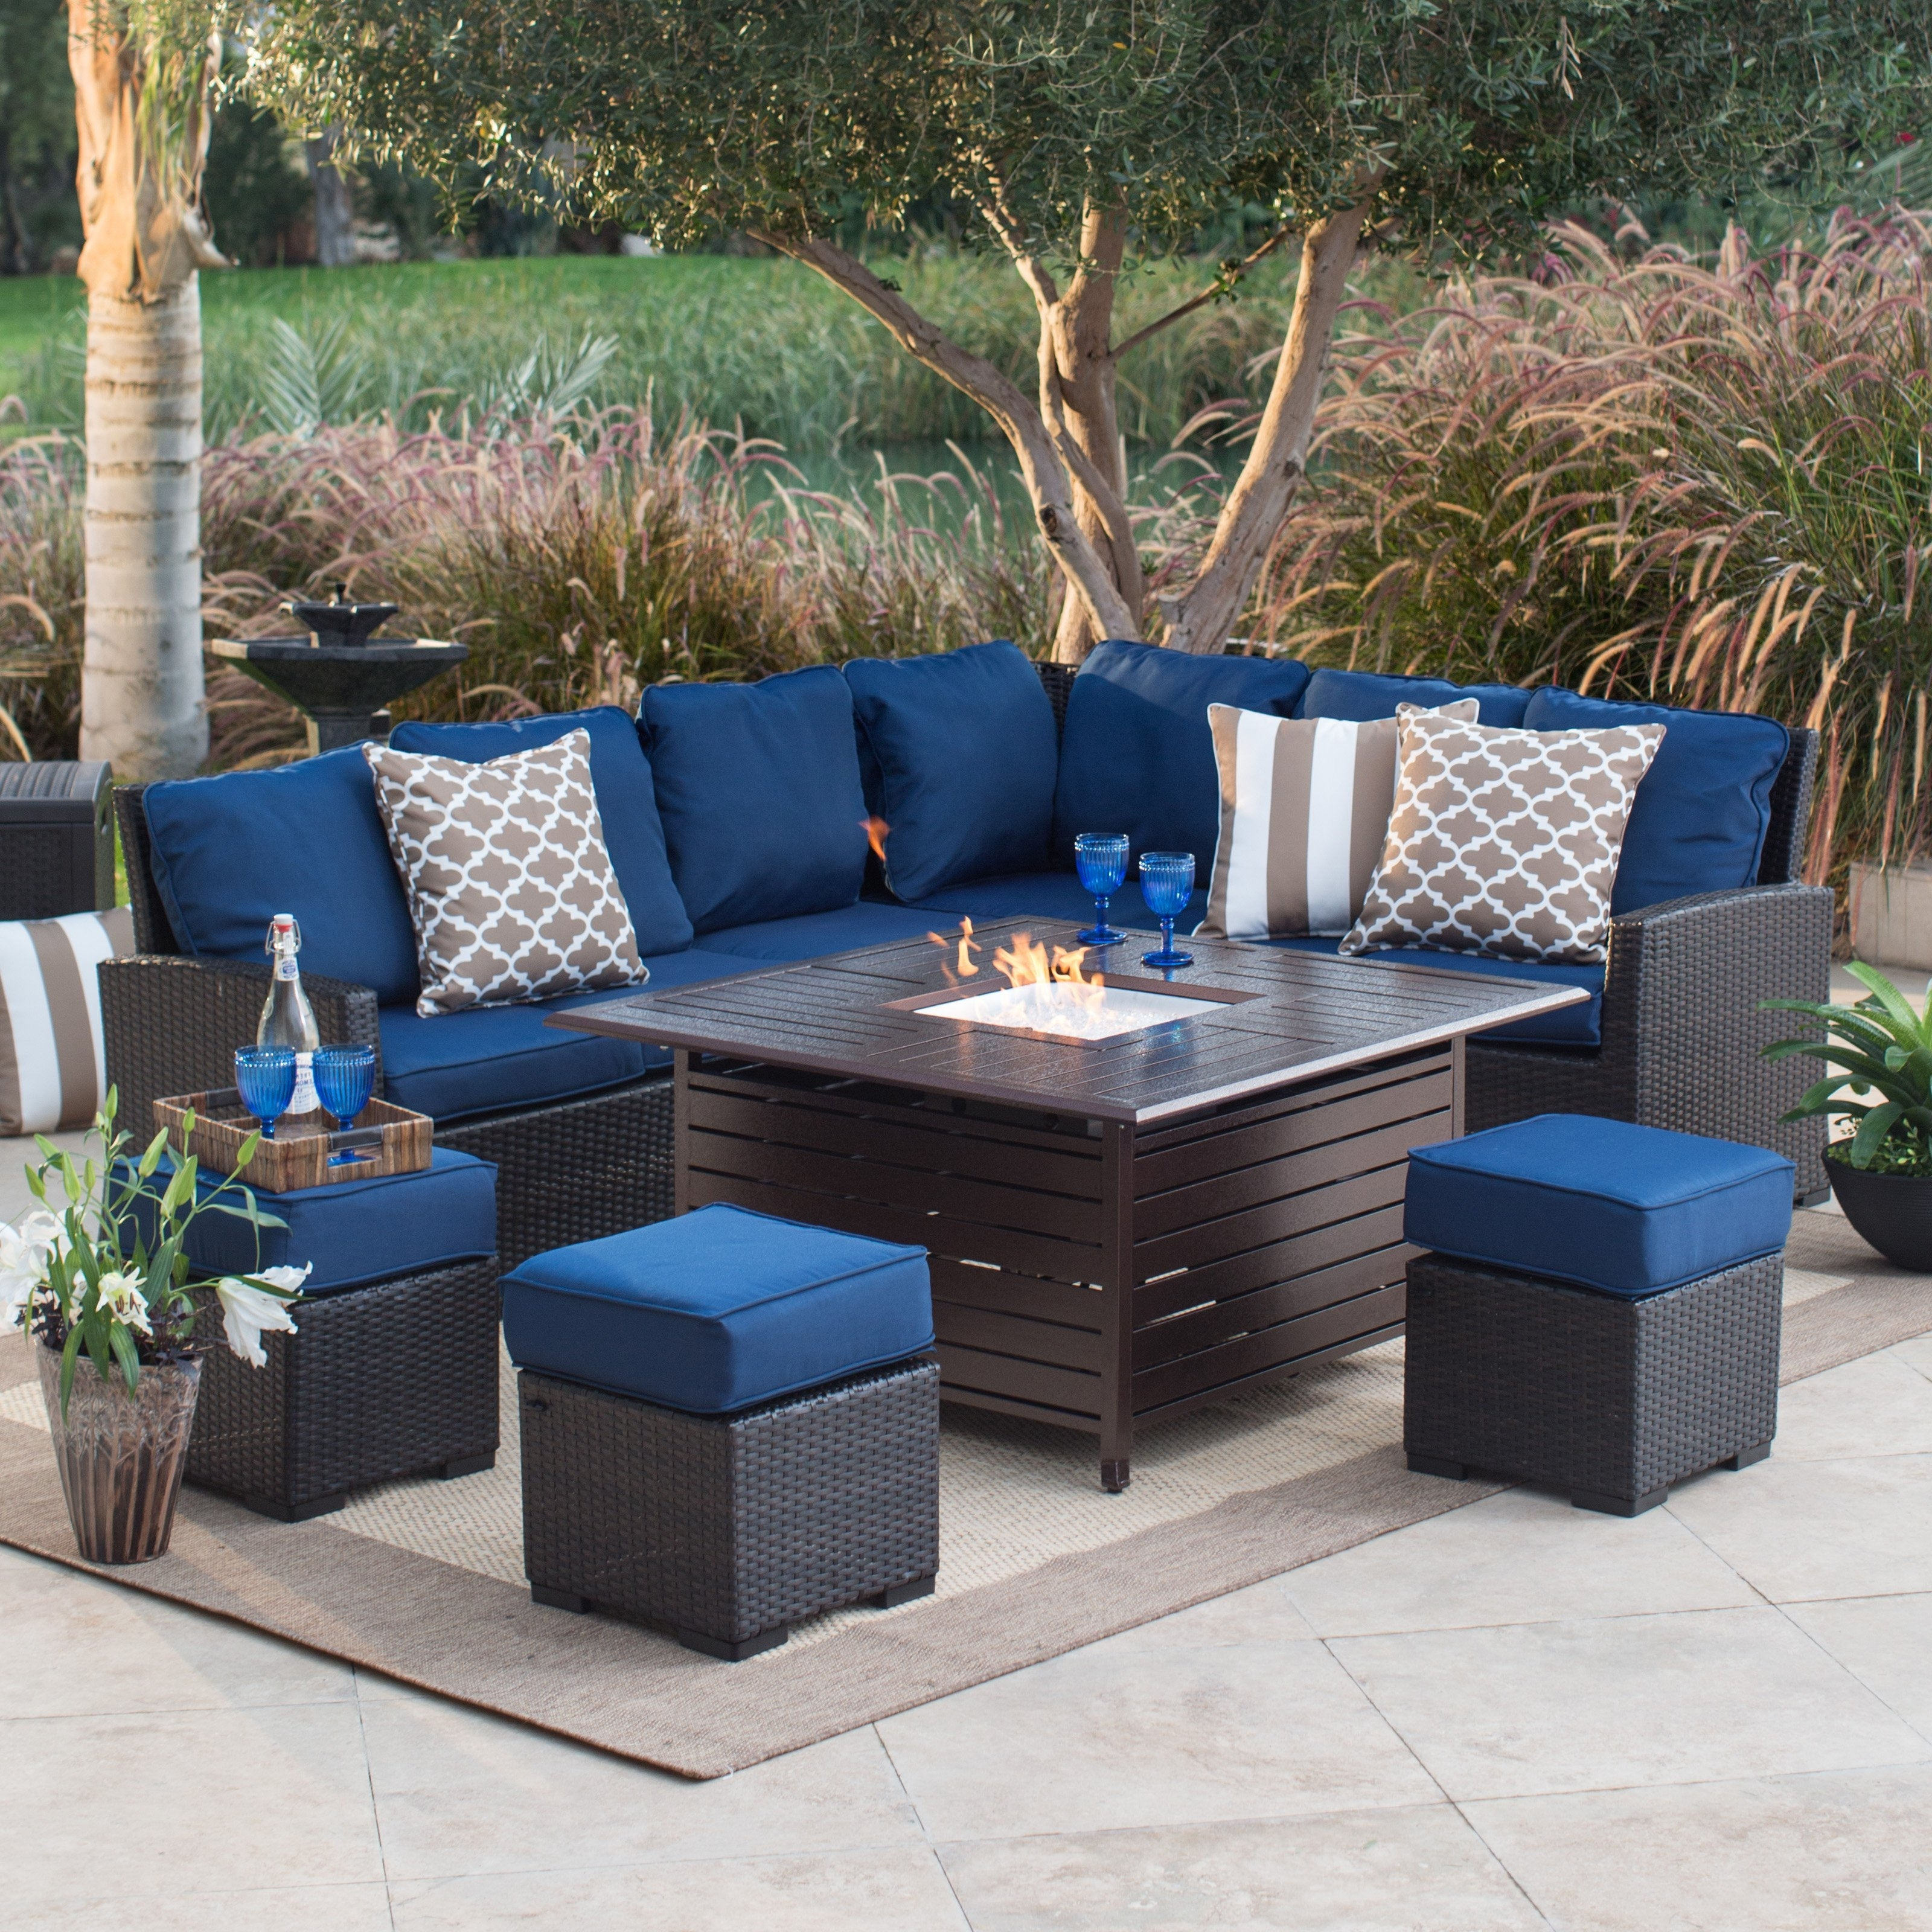 Well Liked Fire Pit Set Clearance Patio Conversation Sets With Swivel Chairs 4 Regarding Patio Conversation Sets With Gas Fire Pit (View 13 of 15)